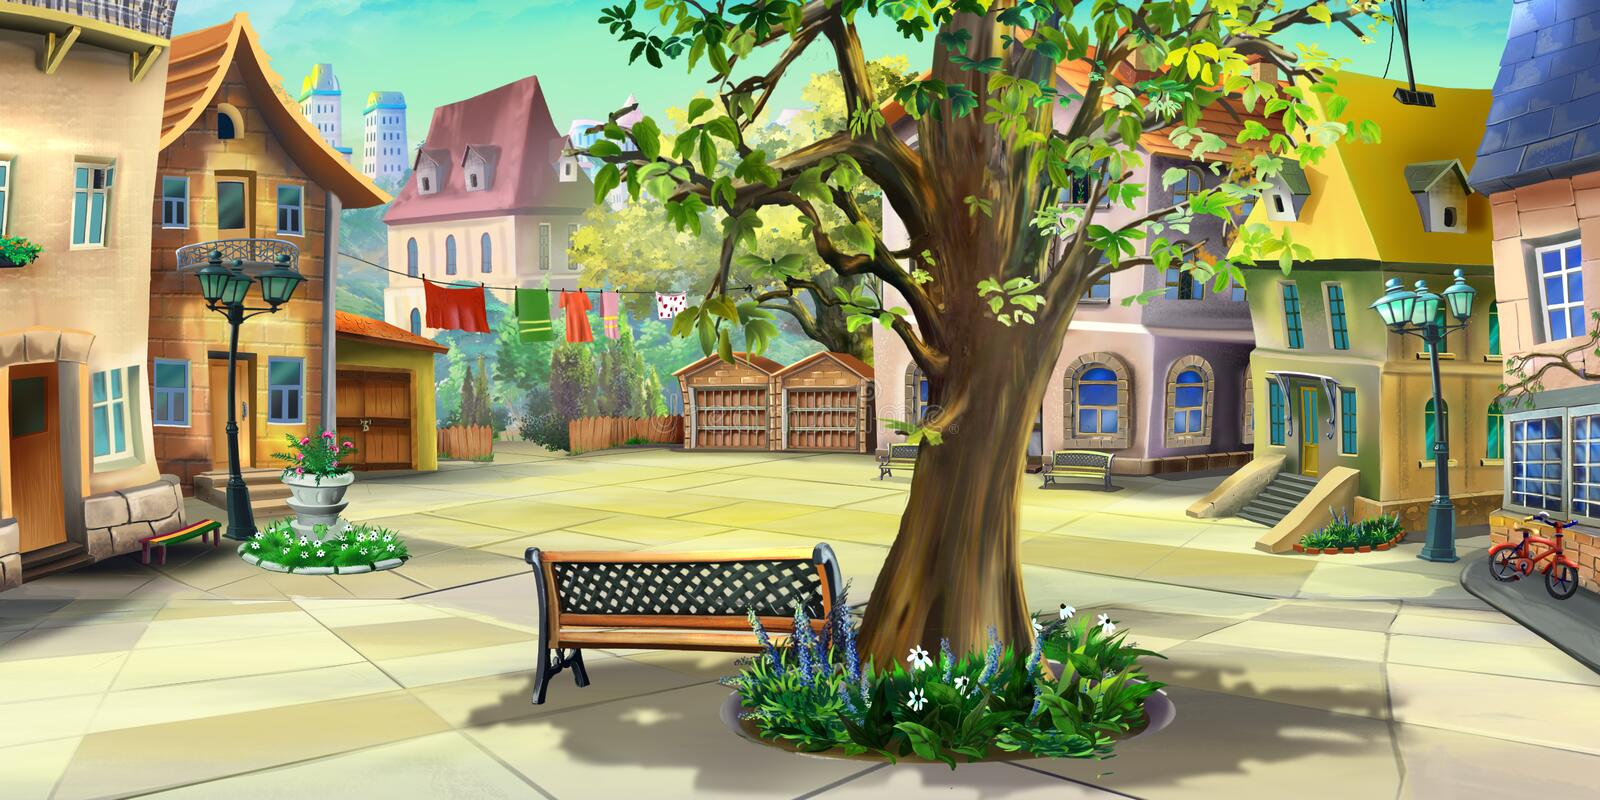 Courtyard in the city. Front view royalty free illustration